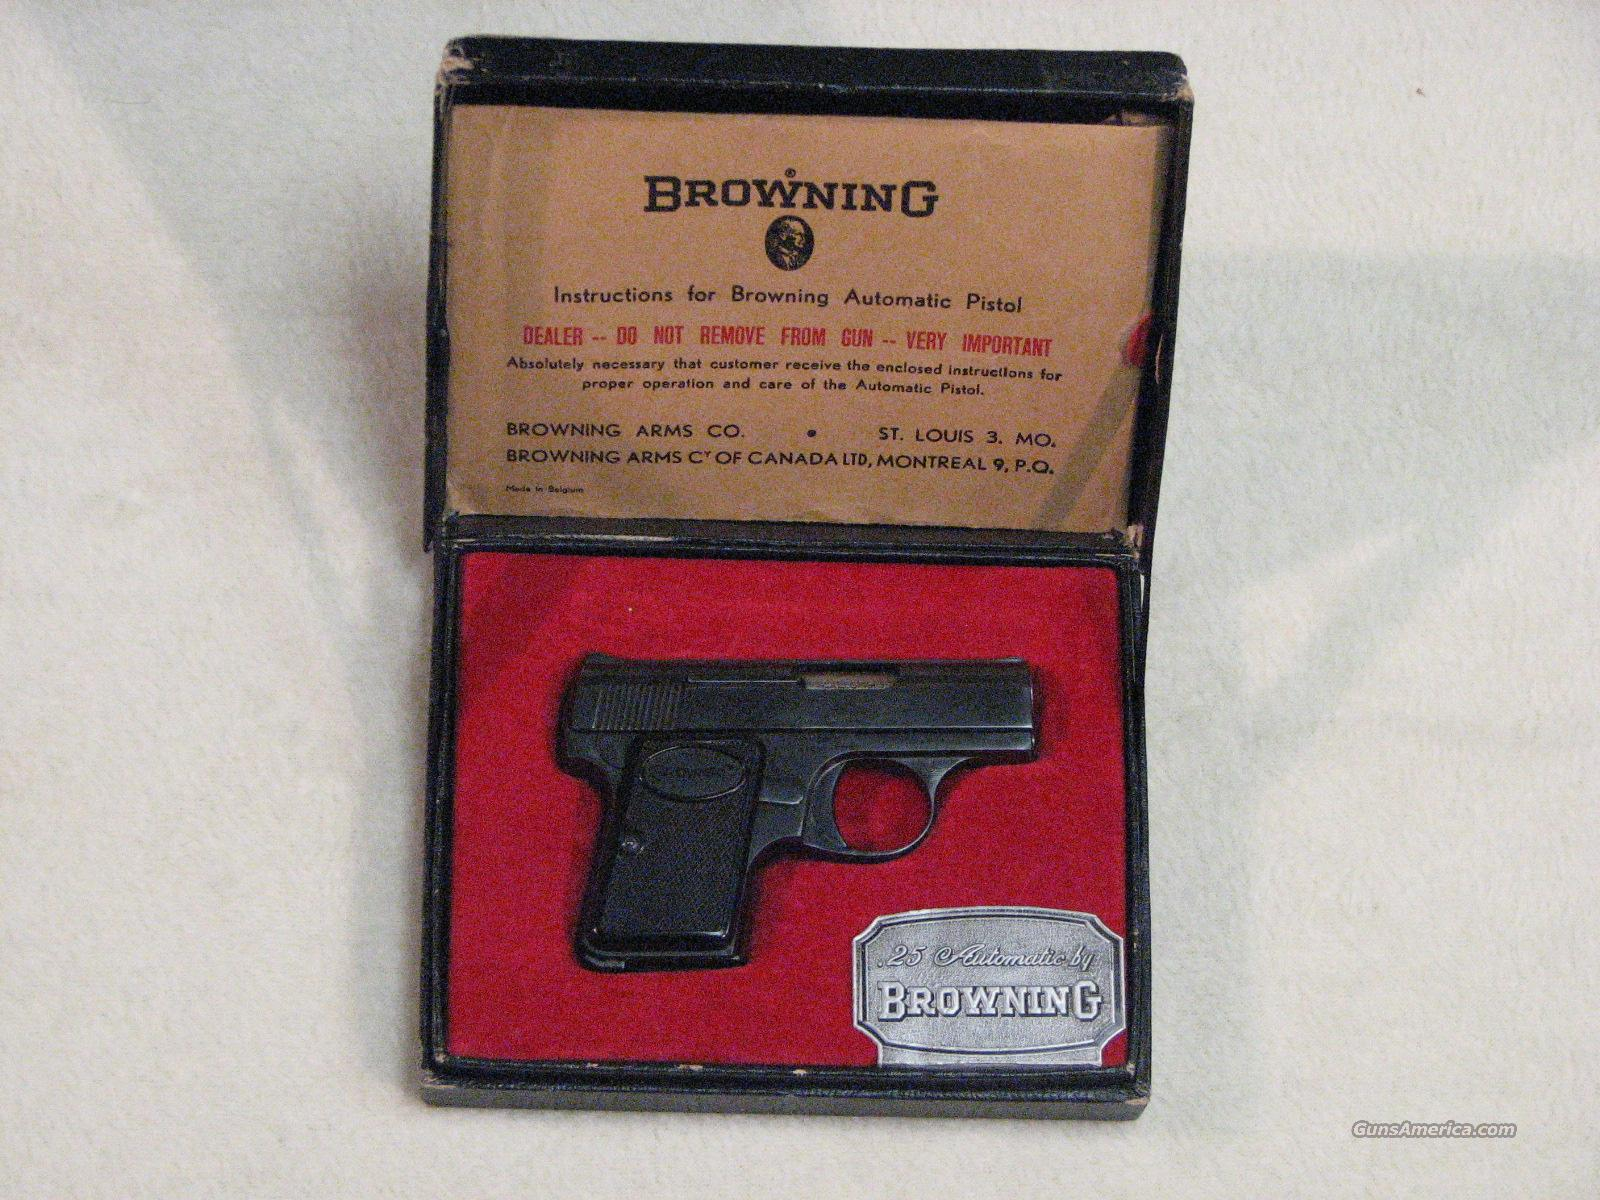 Baby Browning .25 ACP W/ Box and Papers  Guns > Pistols > Browning Pistols > Baby Browning